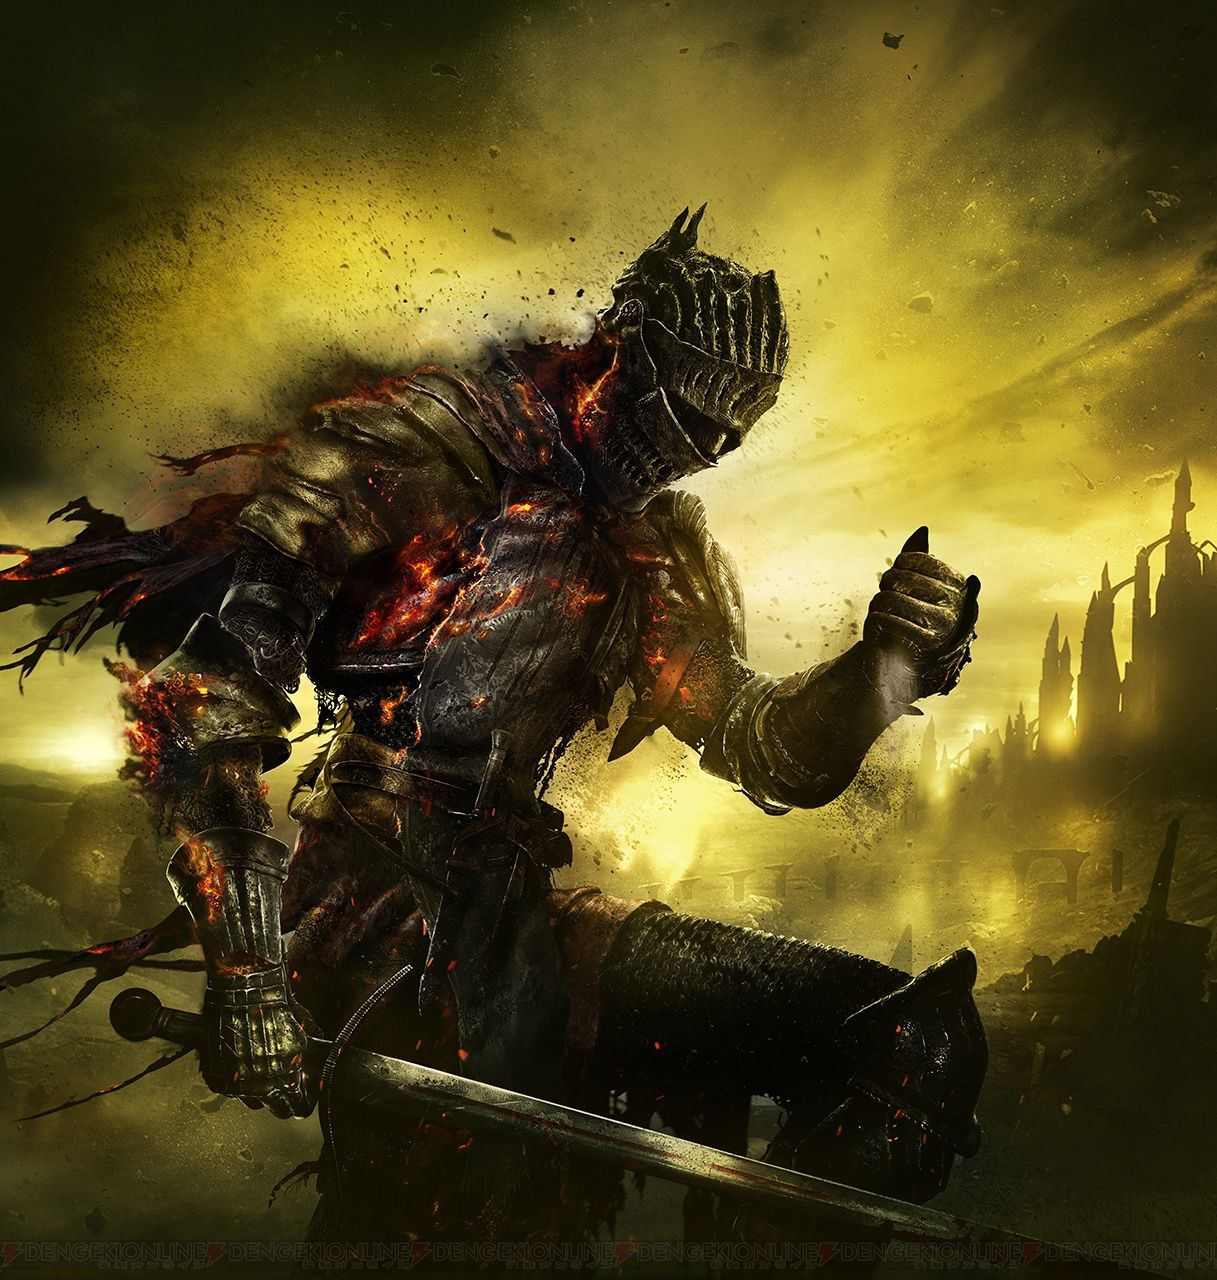 Dark Souls 3 Cover Art | Darkborne | Pinterest | Dark souls, Artwork ...